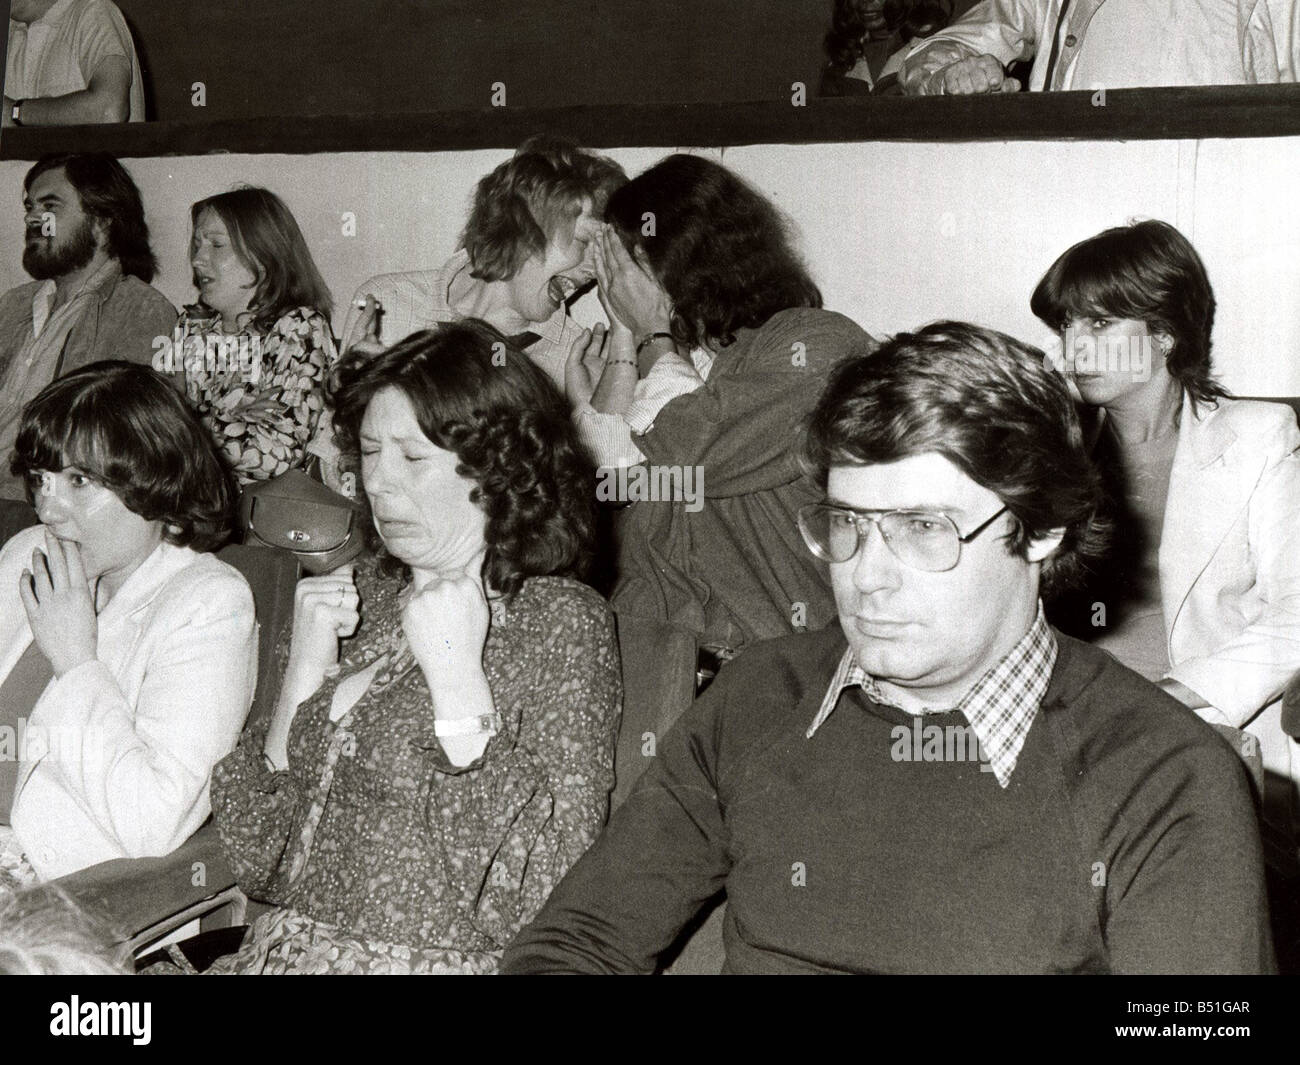 Pictures taken during the first screening of Sci Fi film Alien at the Odeon Theatre in Leicester Square showing Stock Photo